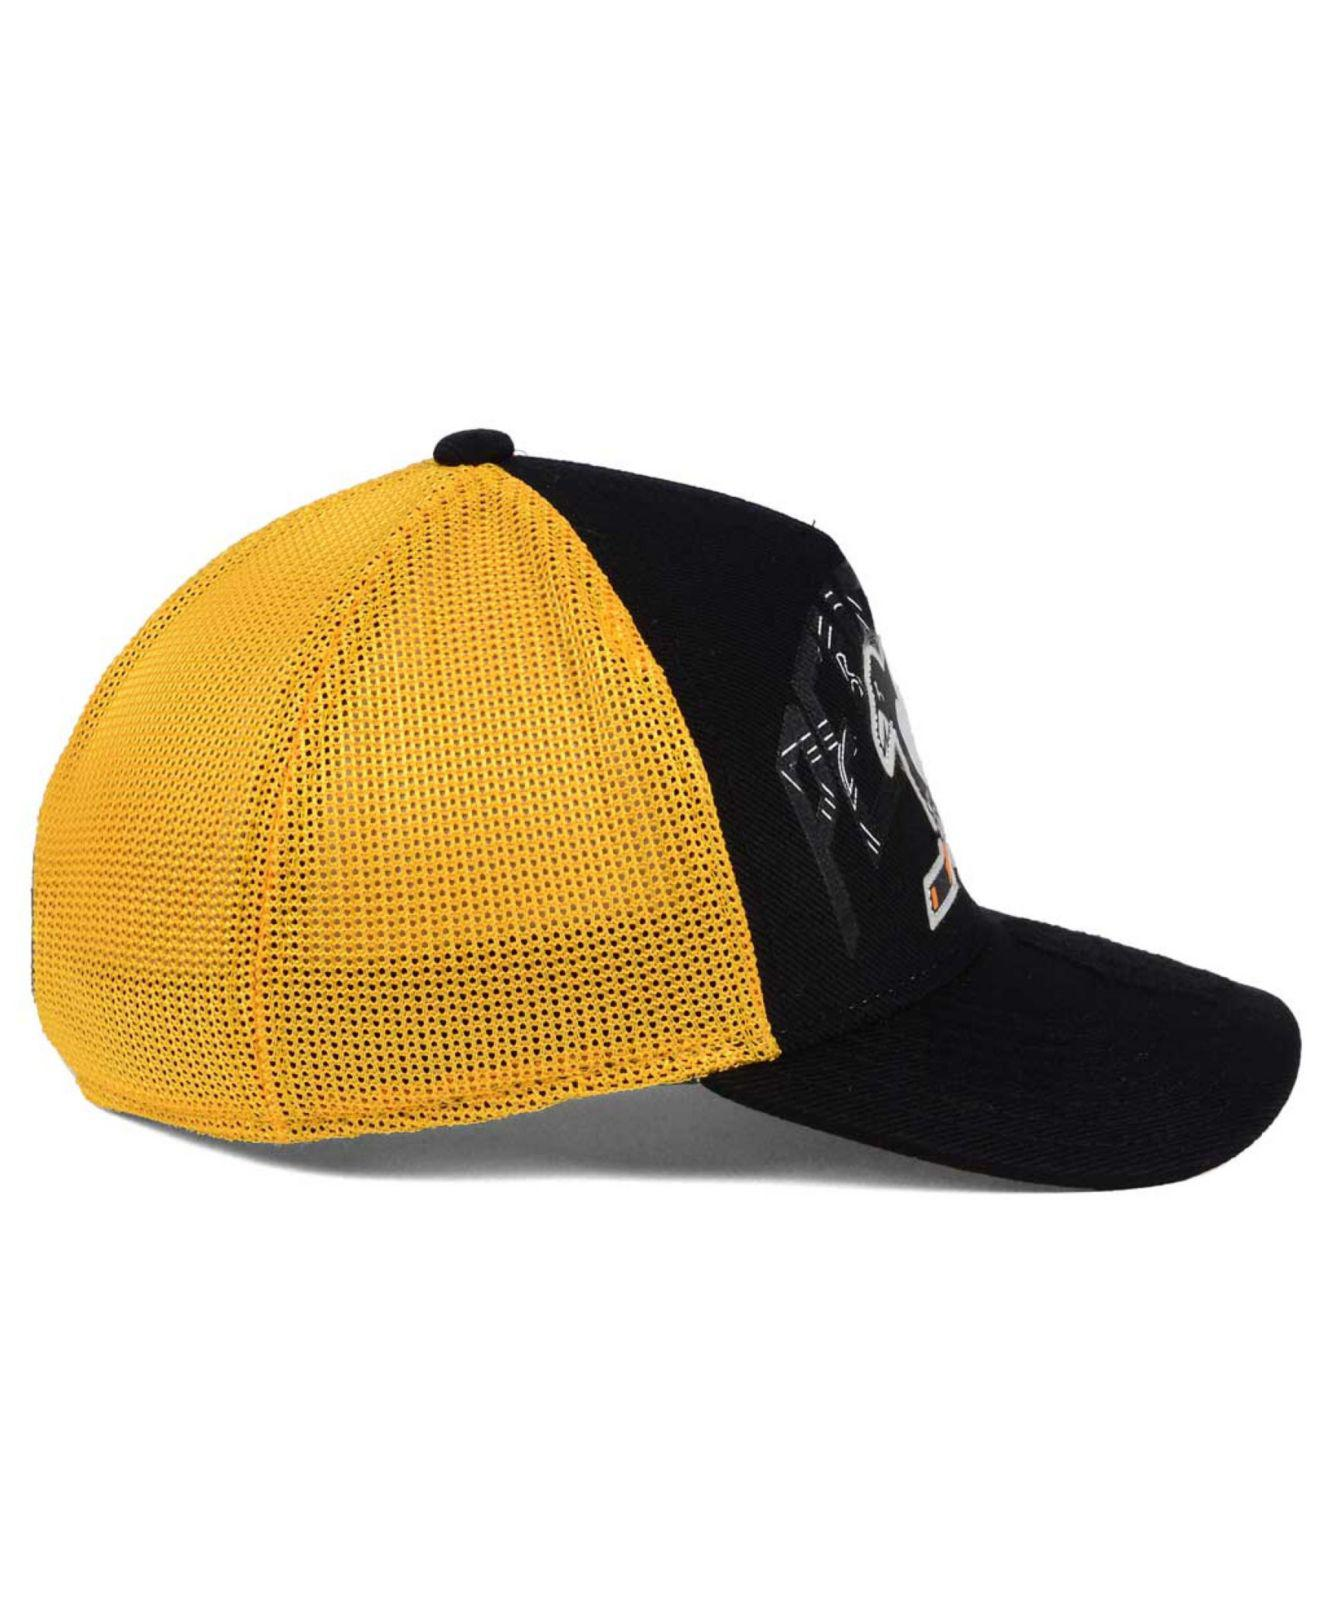 save off 6d276 bcb05 spain spain yellow black mens pittsburgh penguins adidas nhl 100th  celebration structured flex cap 20925371 2018 new f0721 f9899  hot lyst  reebok pittsburgh ...